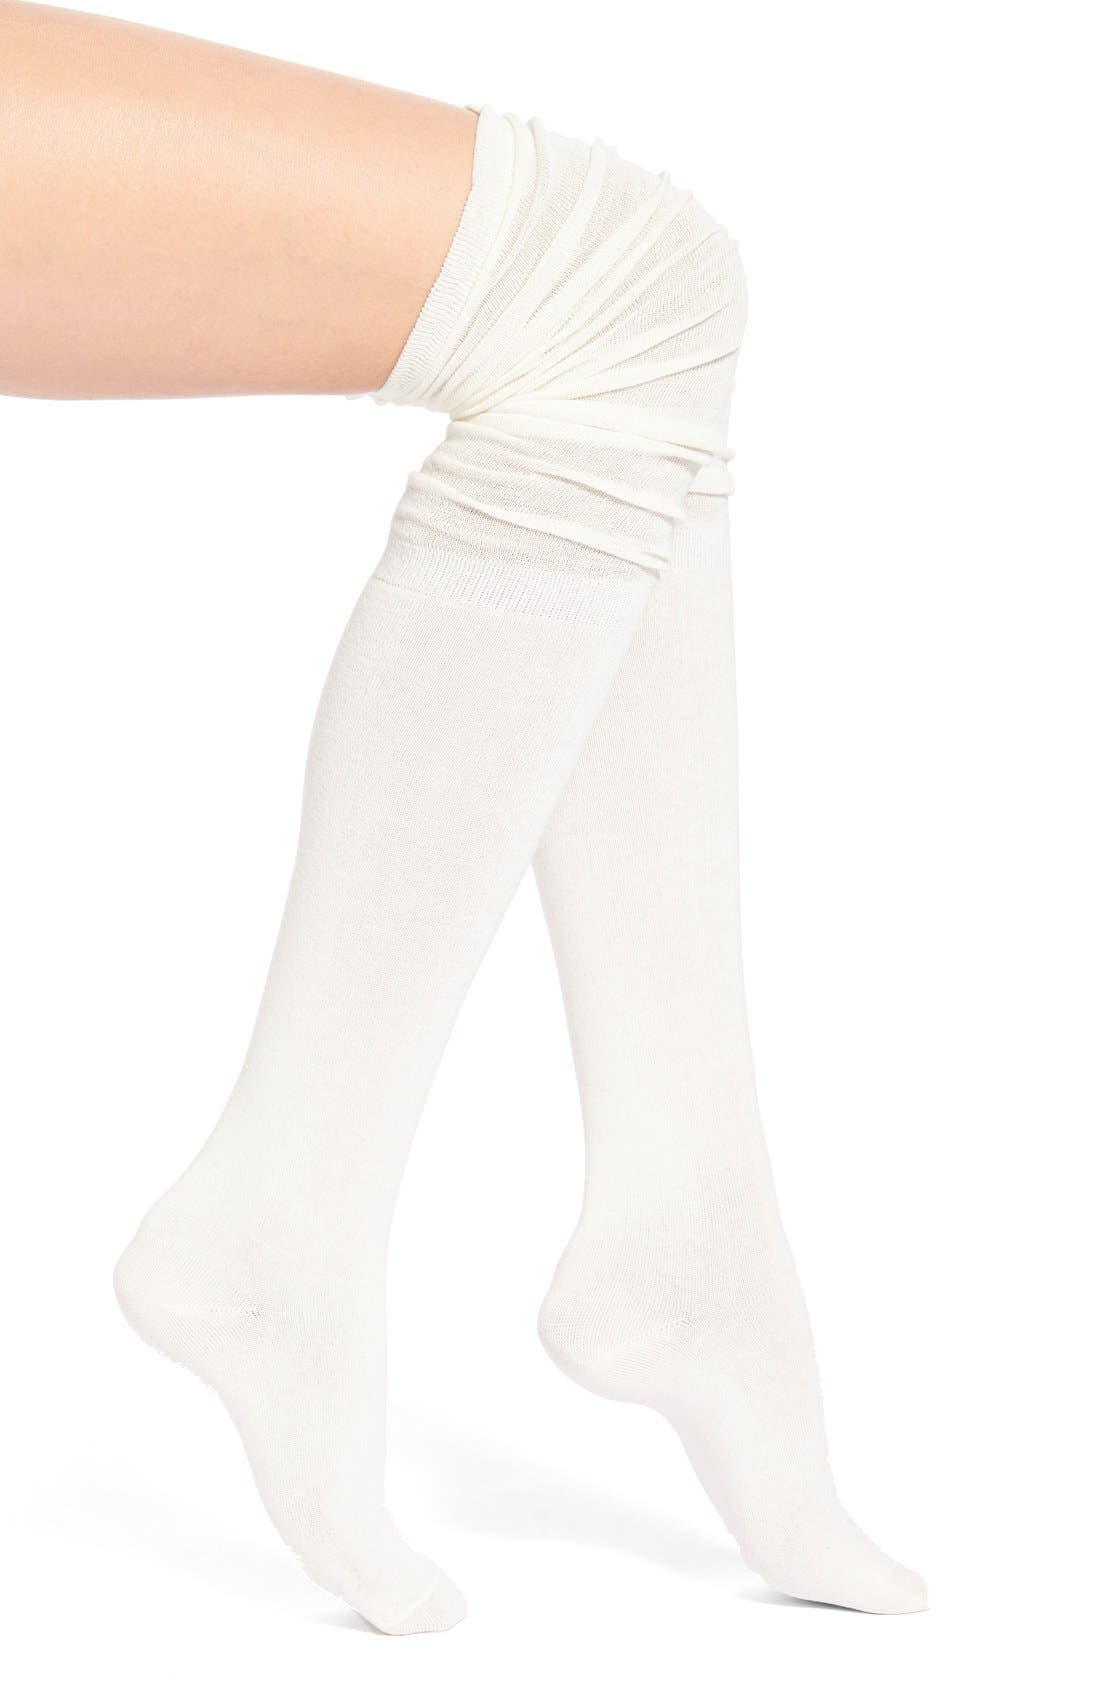 Alternate Image 1 Selected - Arthur George by R. Kardashian Slouchy Over the Knee Socks